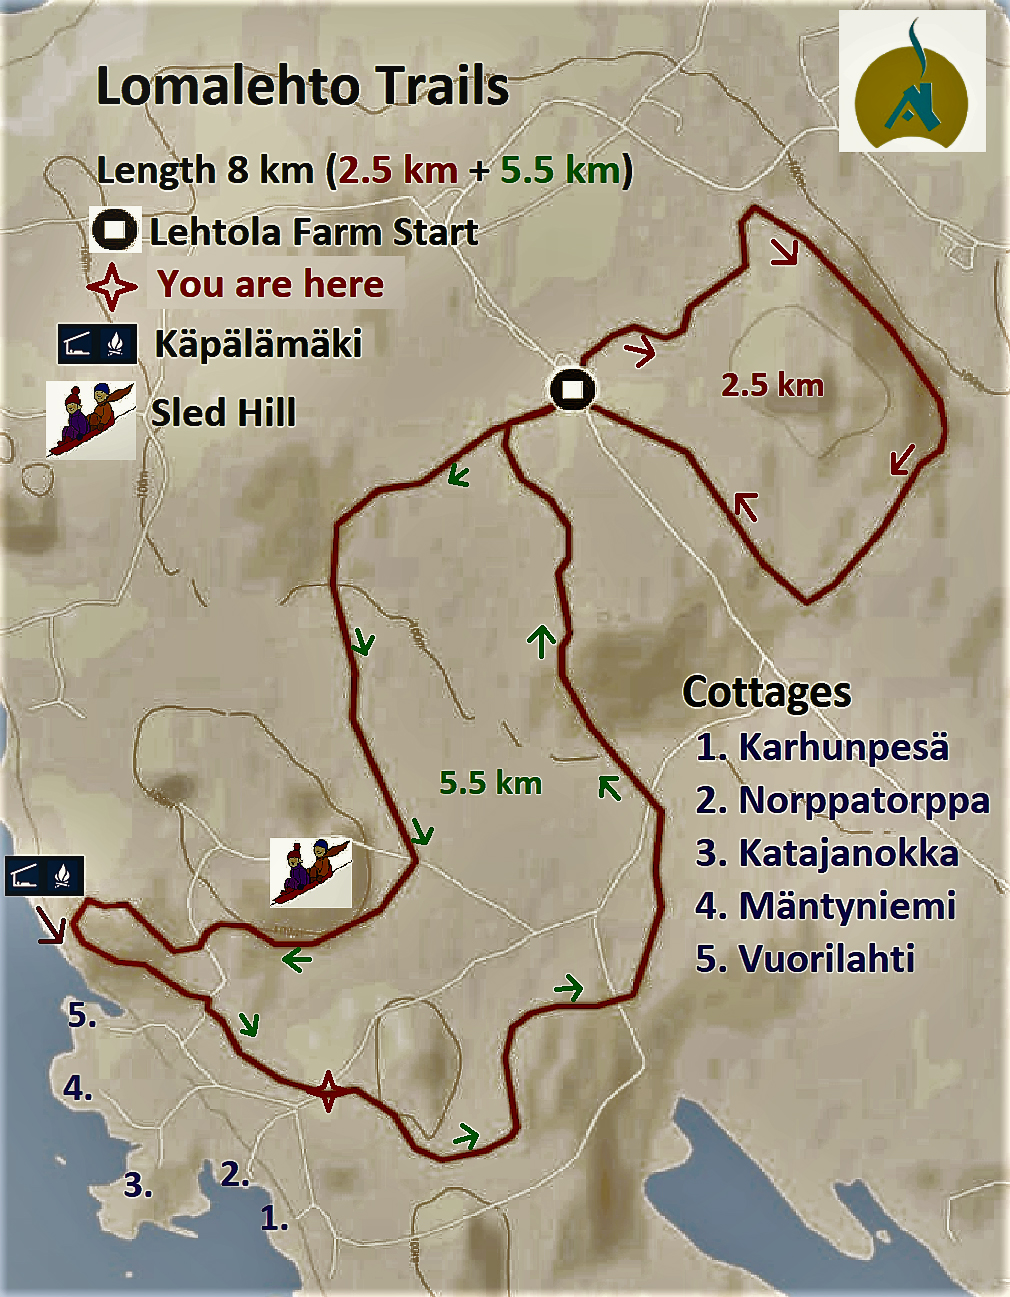 Nature trail map of Lomalehto cottages in Savonlinna